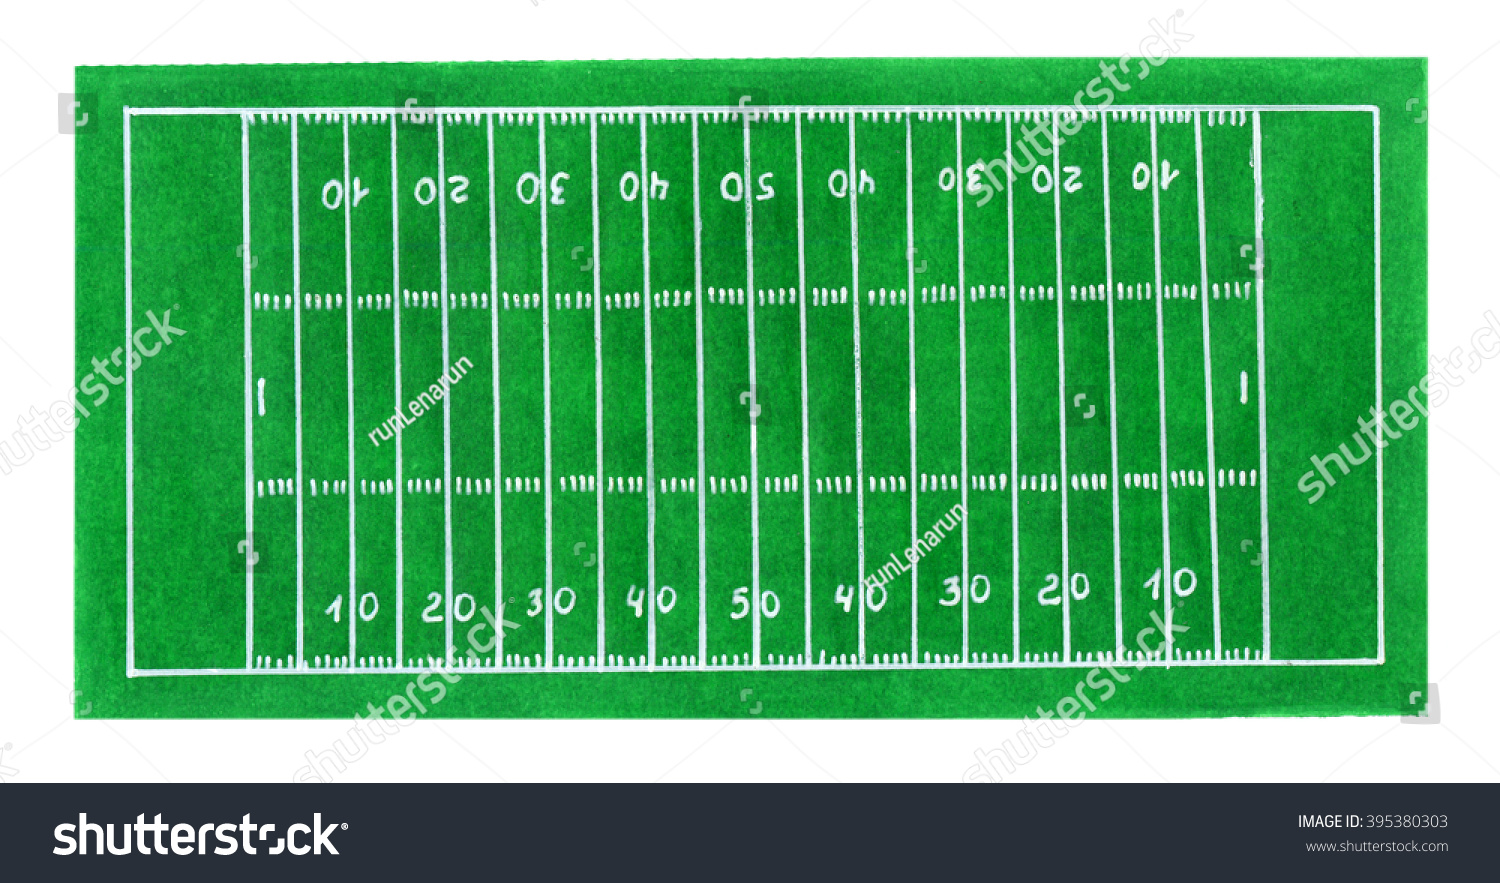 american football field handdrawn green field stock illustration 395380303 https www shutterstock com image illustration american football field handdrawn green top 395380303